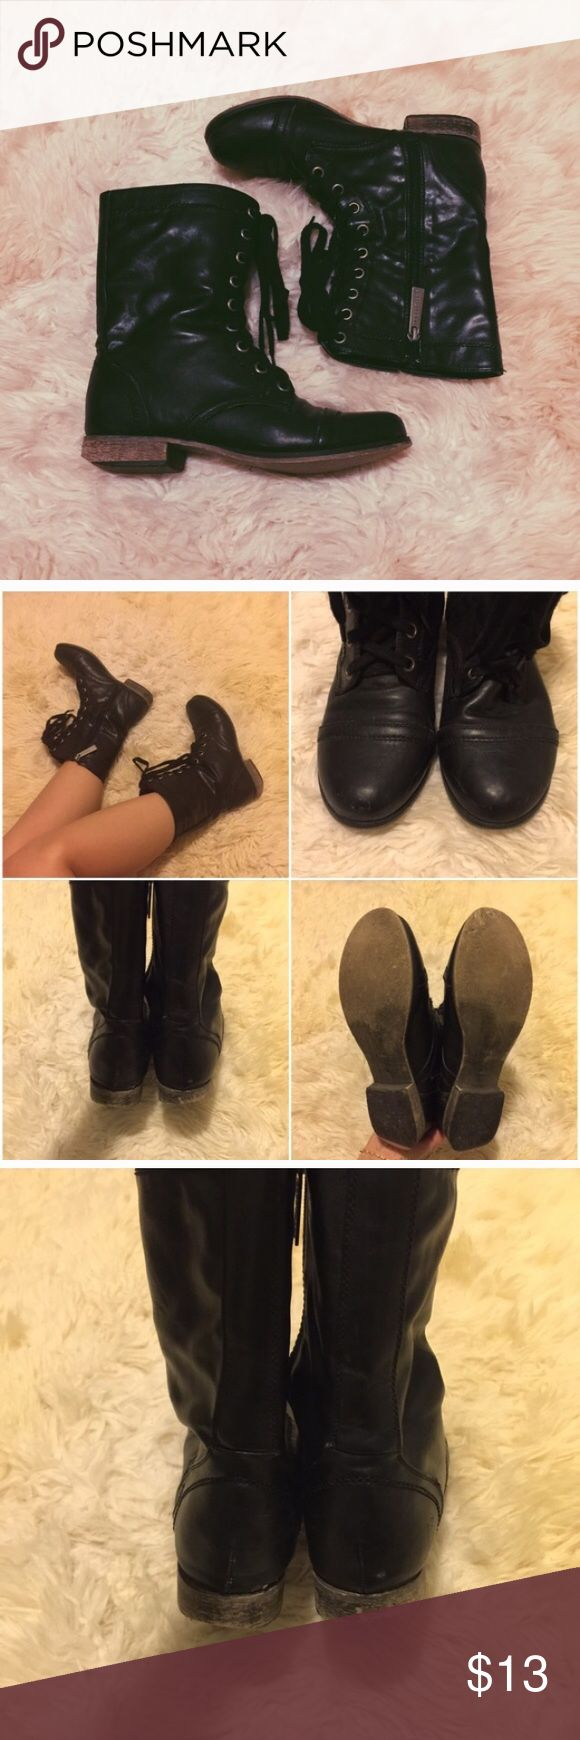 breckel's combat boots! worn with some life left! reposhing because I have too many black boots! true to size, very soft and slouchy... super cute with short skirts! Breckelle's Shorts